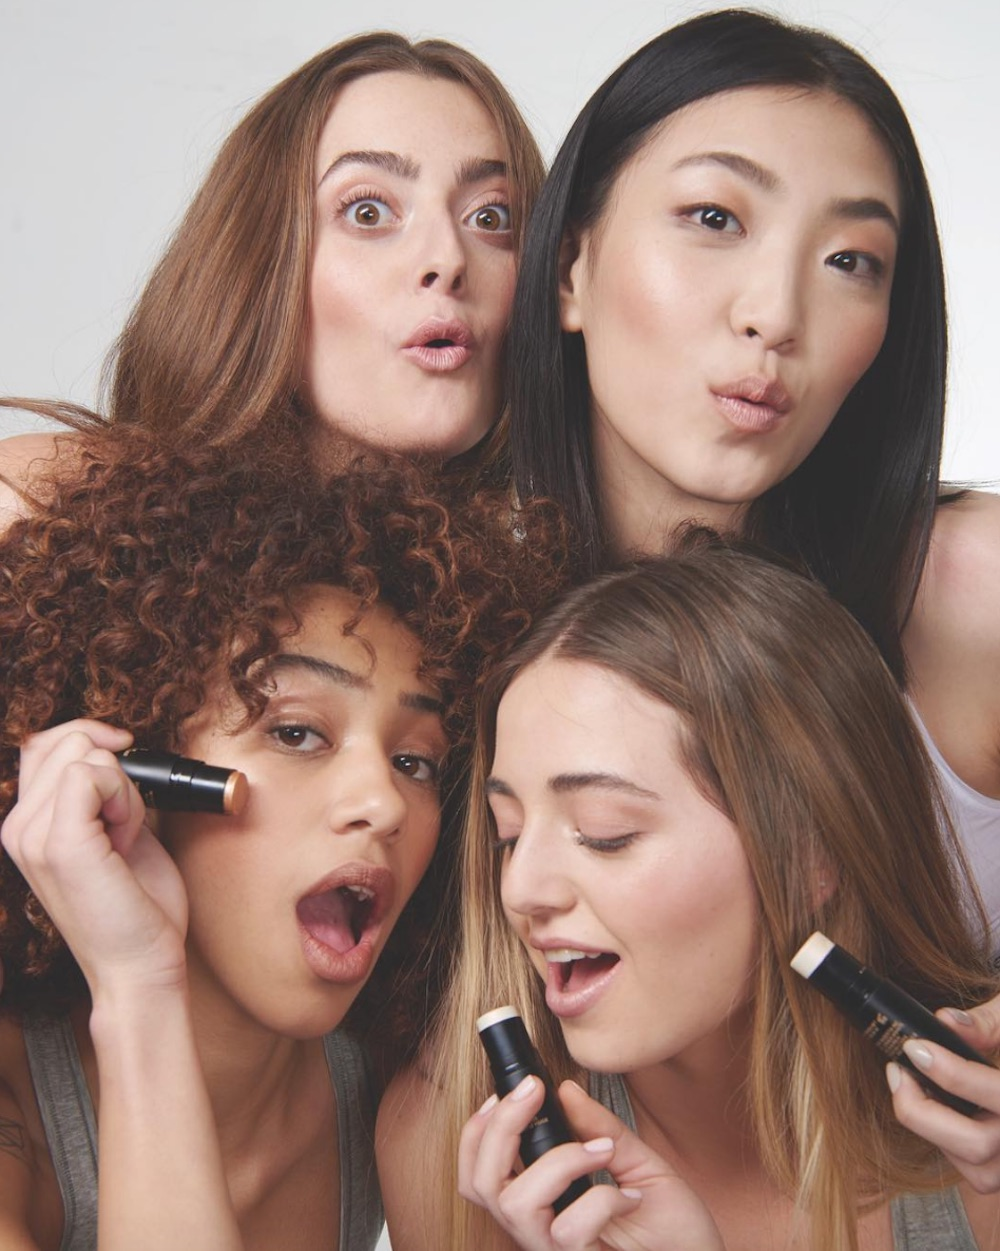 Nudestix's new highlighters will make getting that glow so much easier